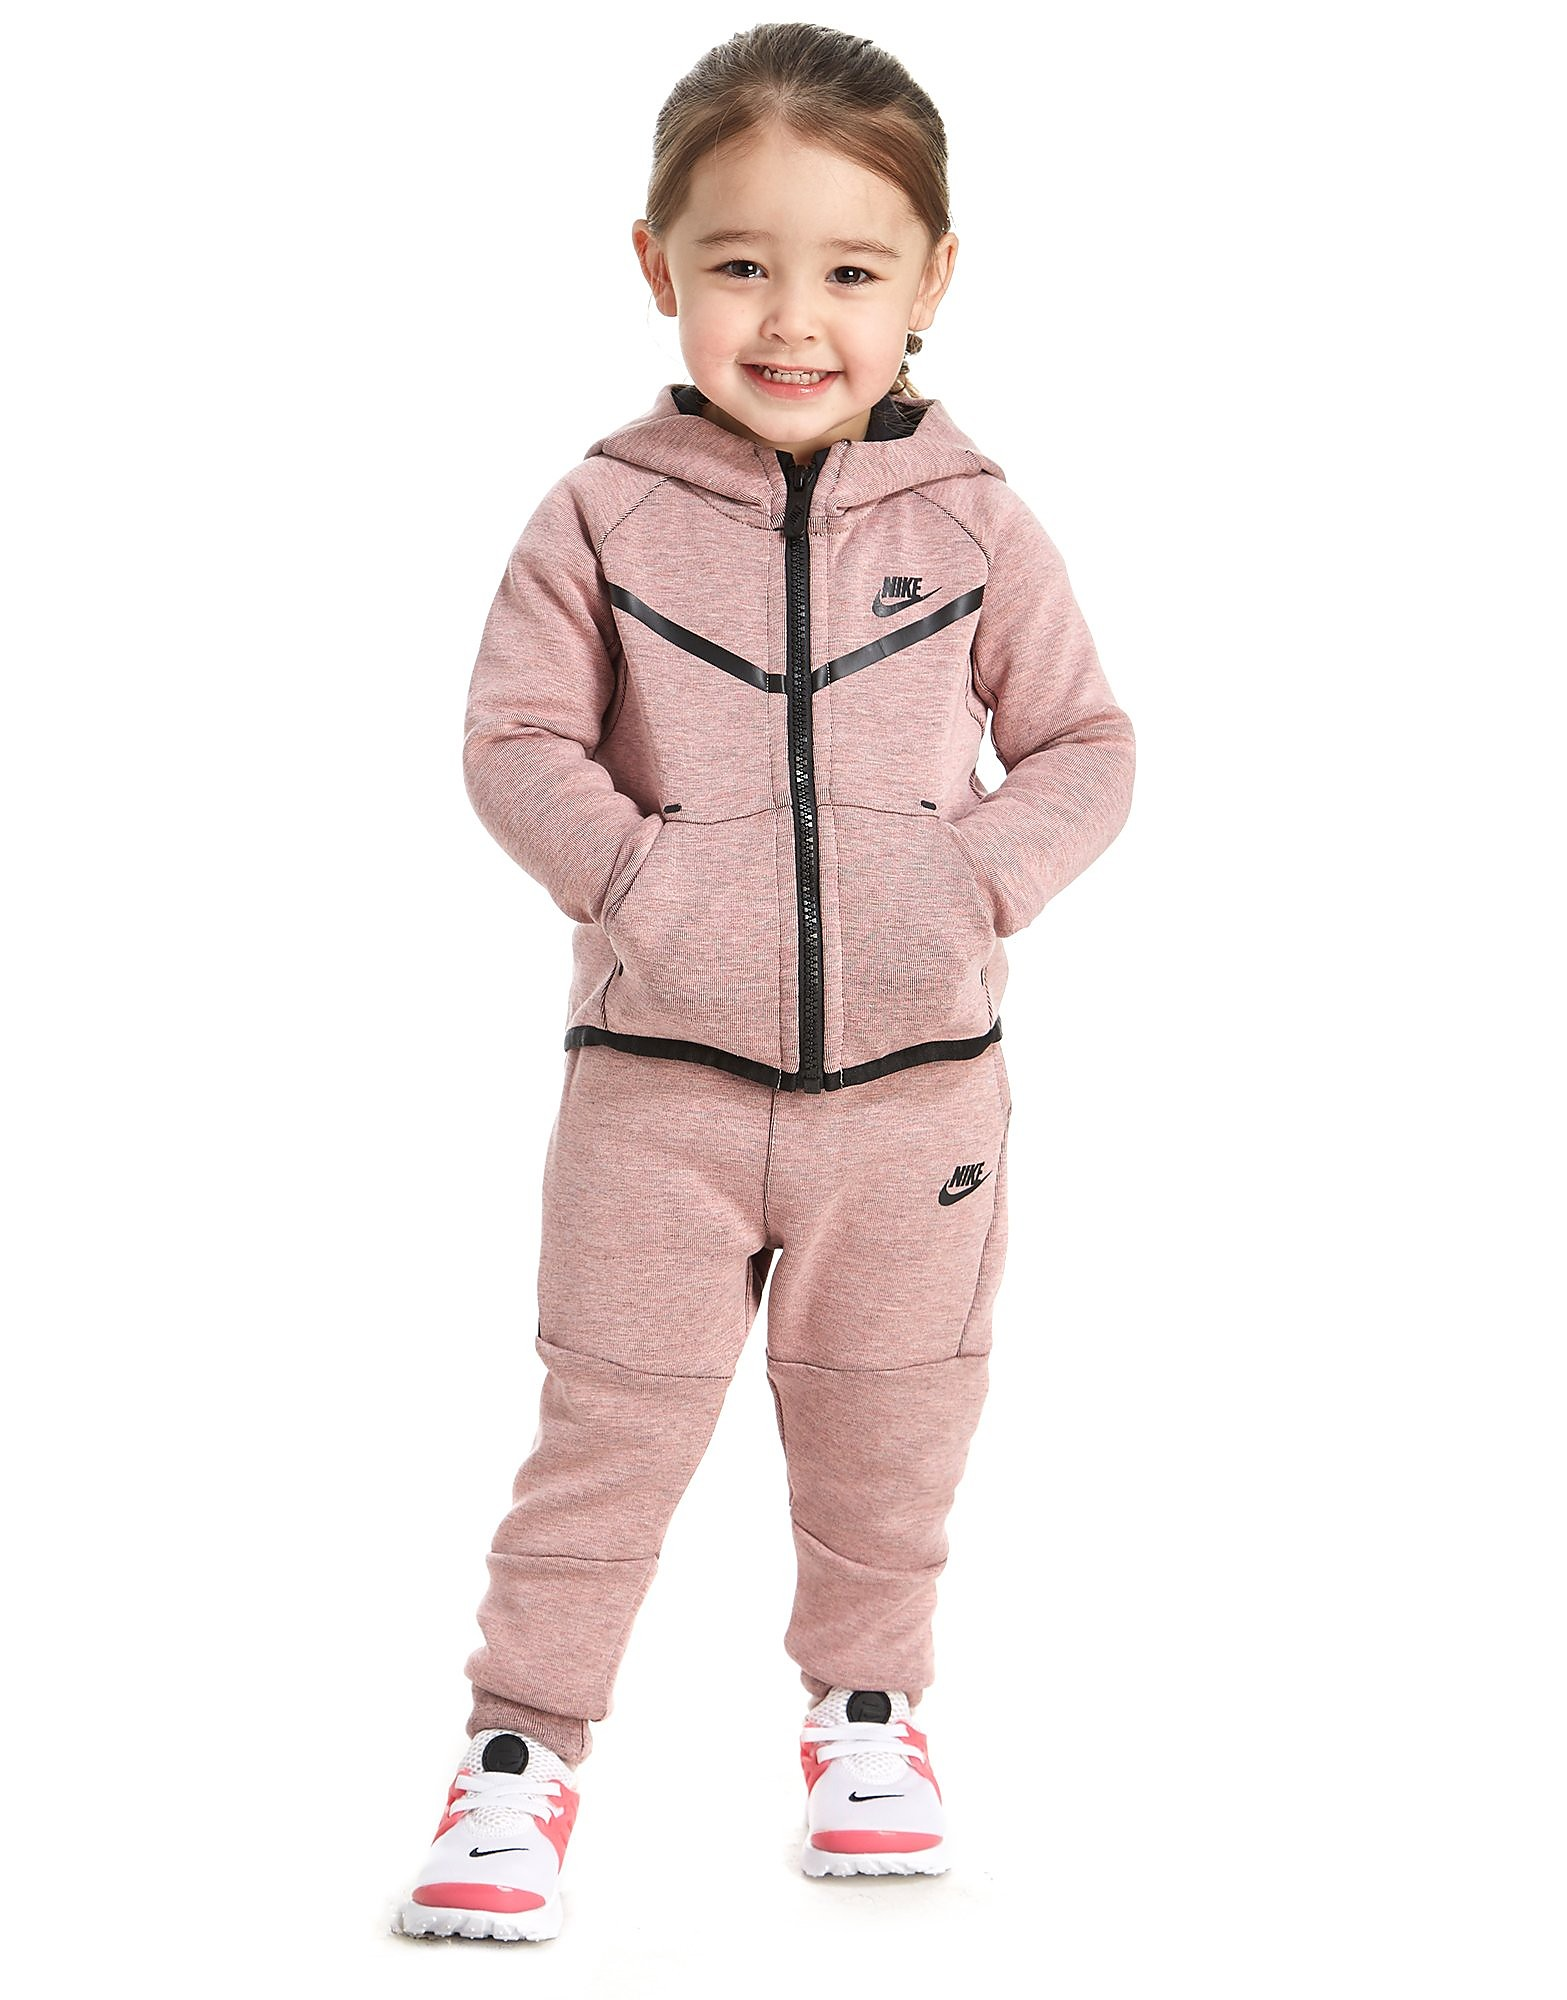 Nike Girls' Tech Fleece Suit Infant